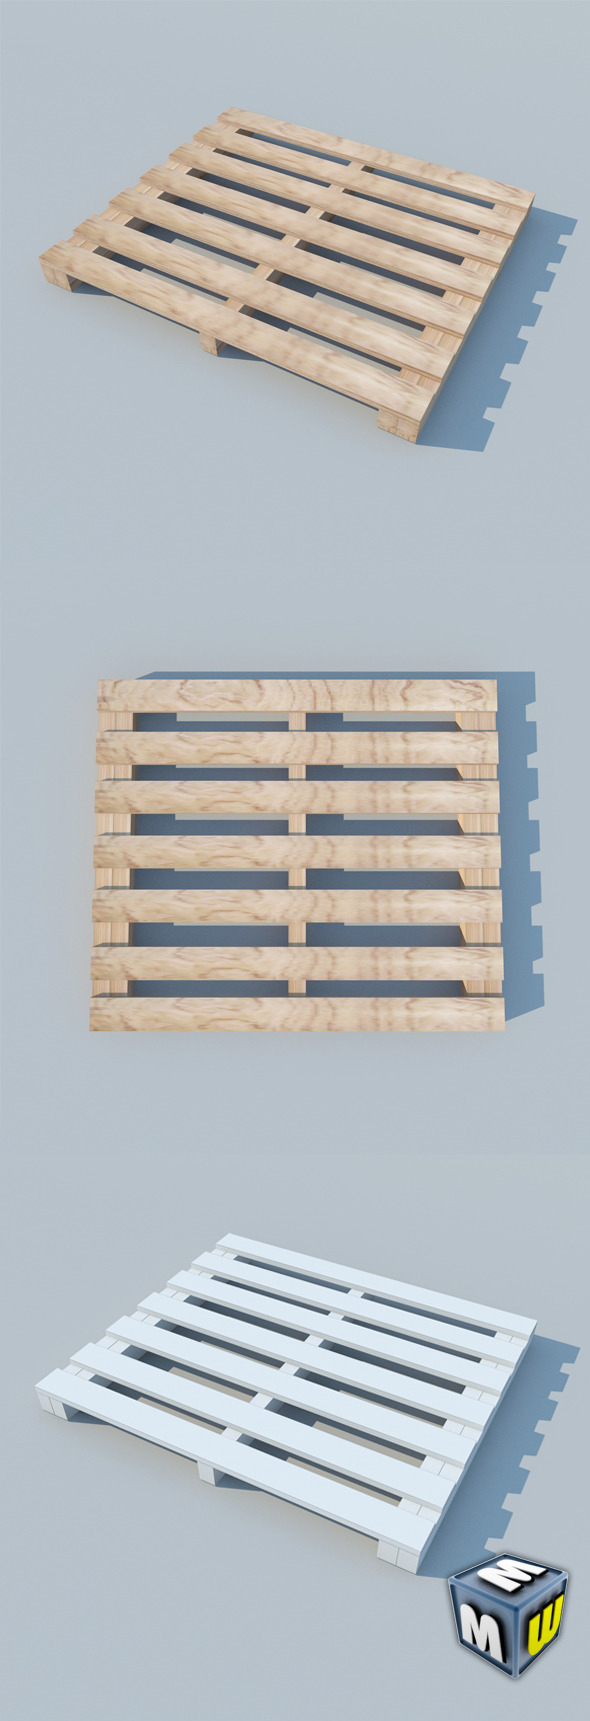 Wood Pallet 2 MAX 2011 - 3DOcean Item for Sale